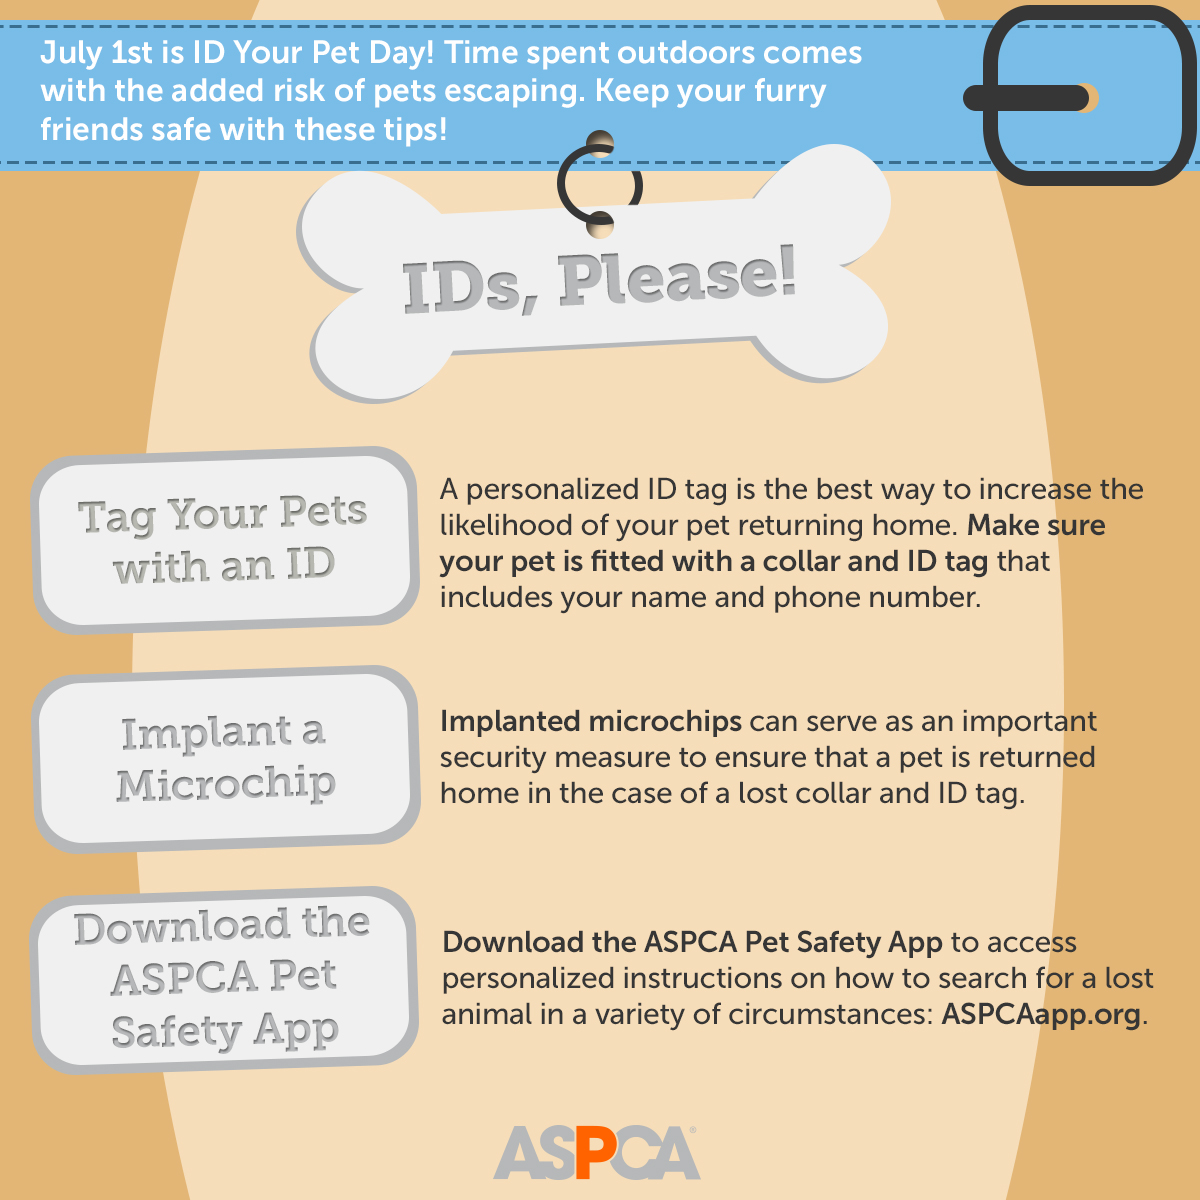 Help the ASPCA celebrate ID Your Pet Day on July 1st – a holiday to raise awareness about the importance of tagging your pets with a personalized ID tag.